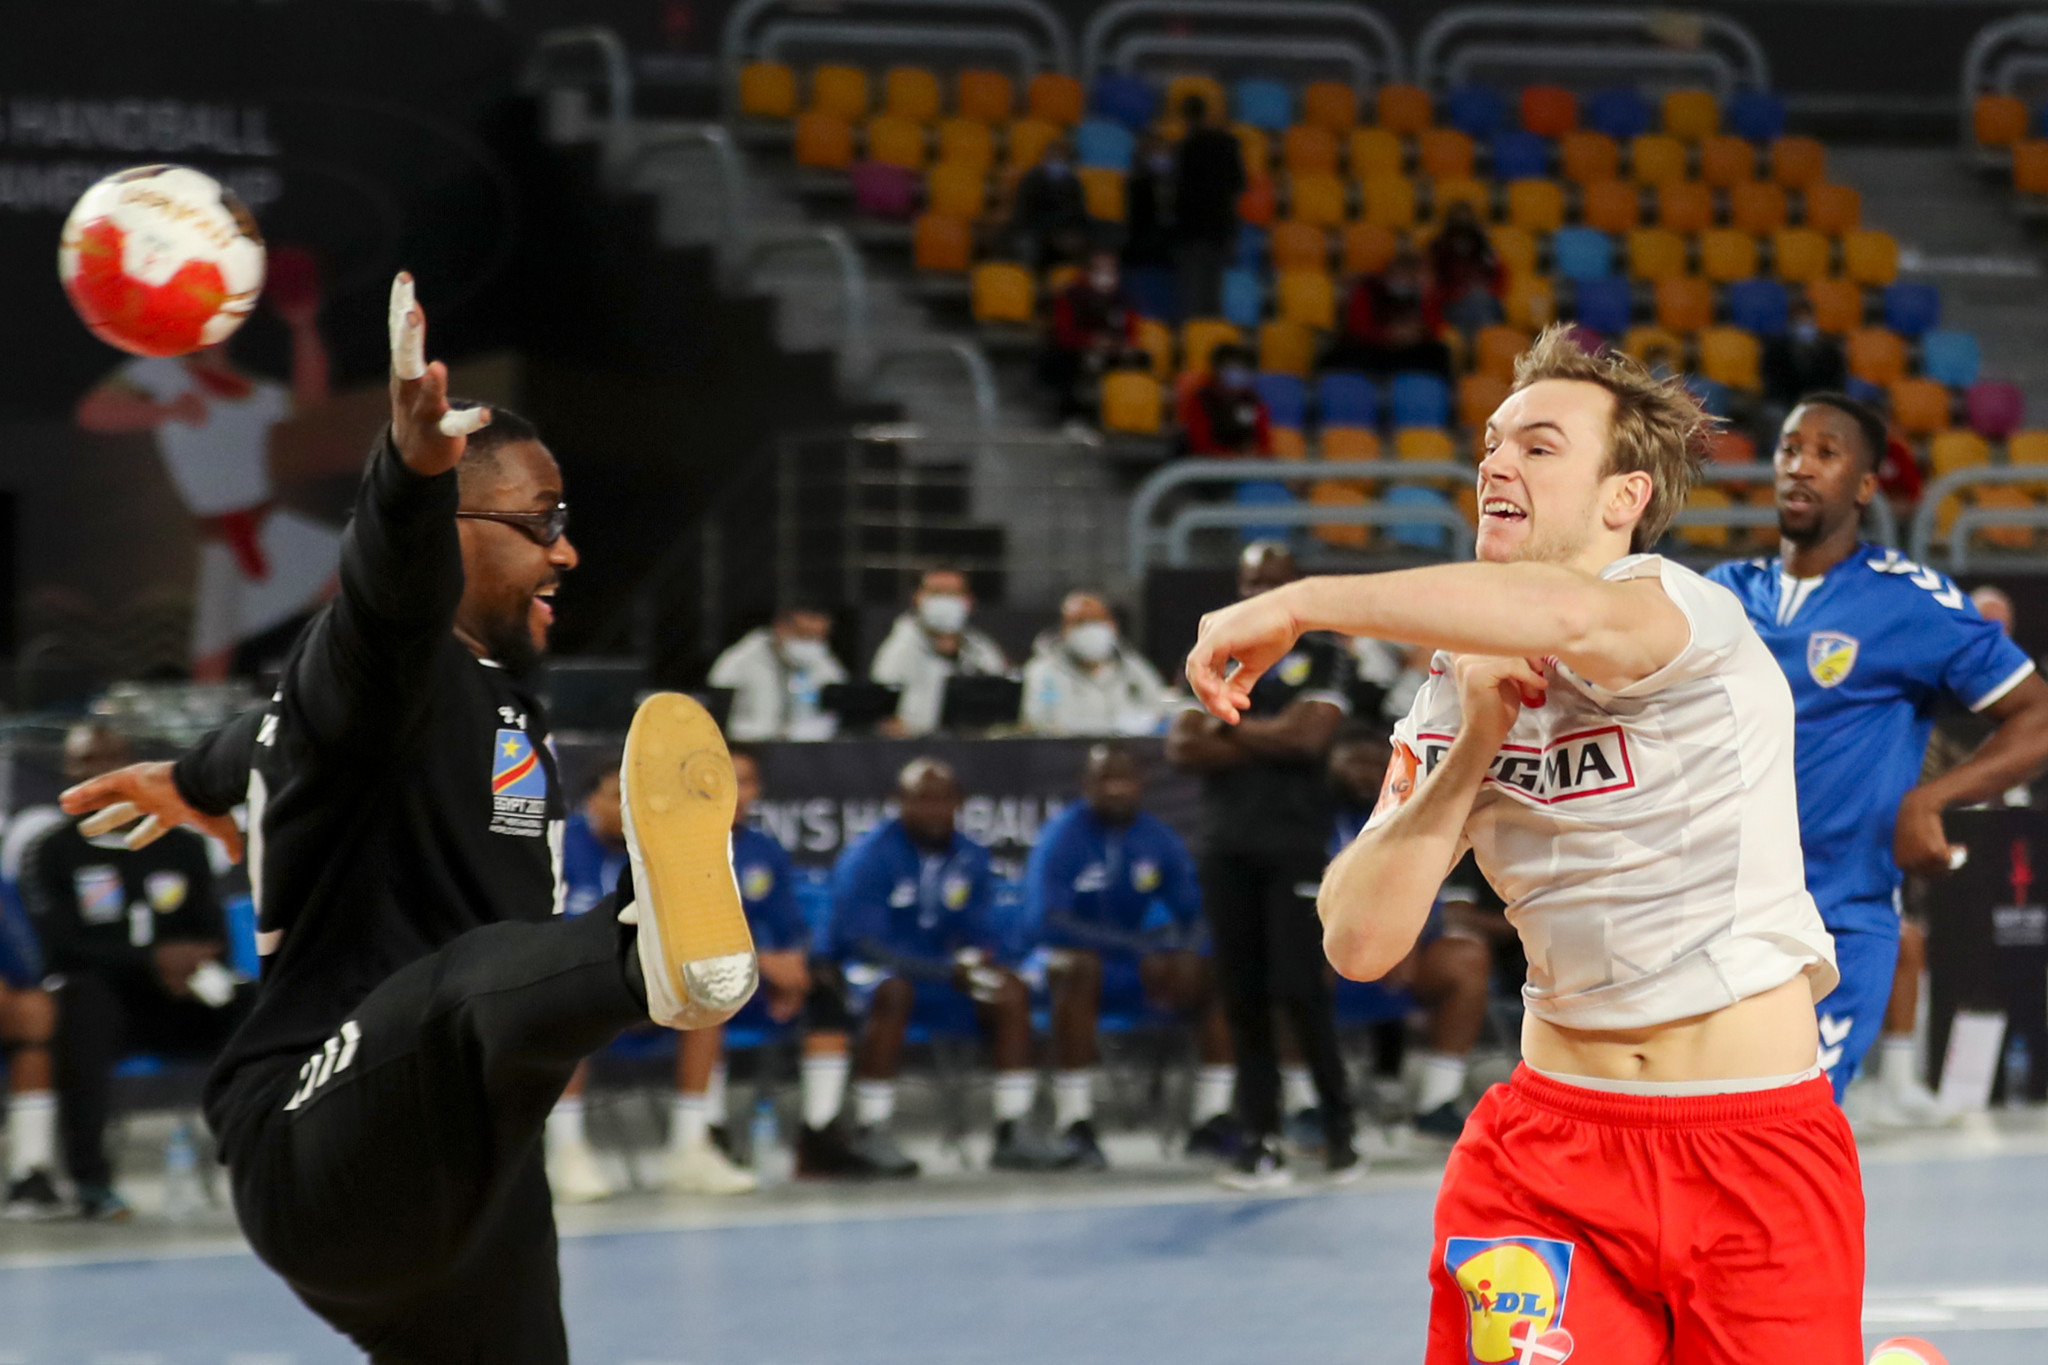 World champions Denmark comfortably beat DR Congo in Group D of the IHF Men's World Handball Championship in Egypt ©Getty Images